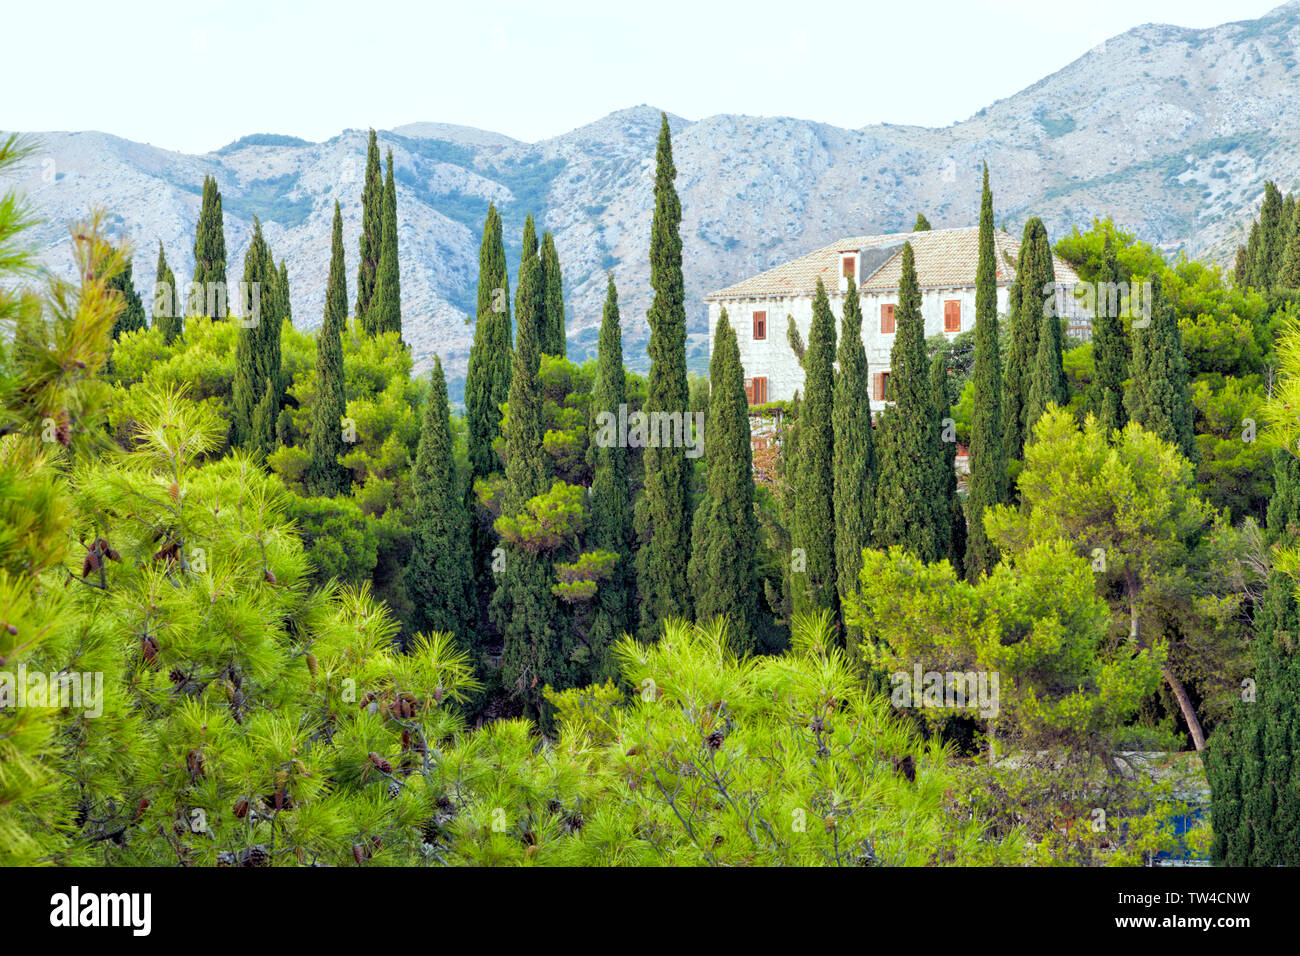 Old country villa on a hill in Croatia, surrounded by cypress and pine trees, with mountains in the background, lush summer landscape . - Stock Image